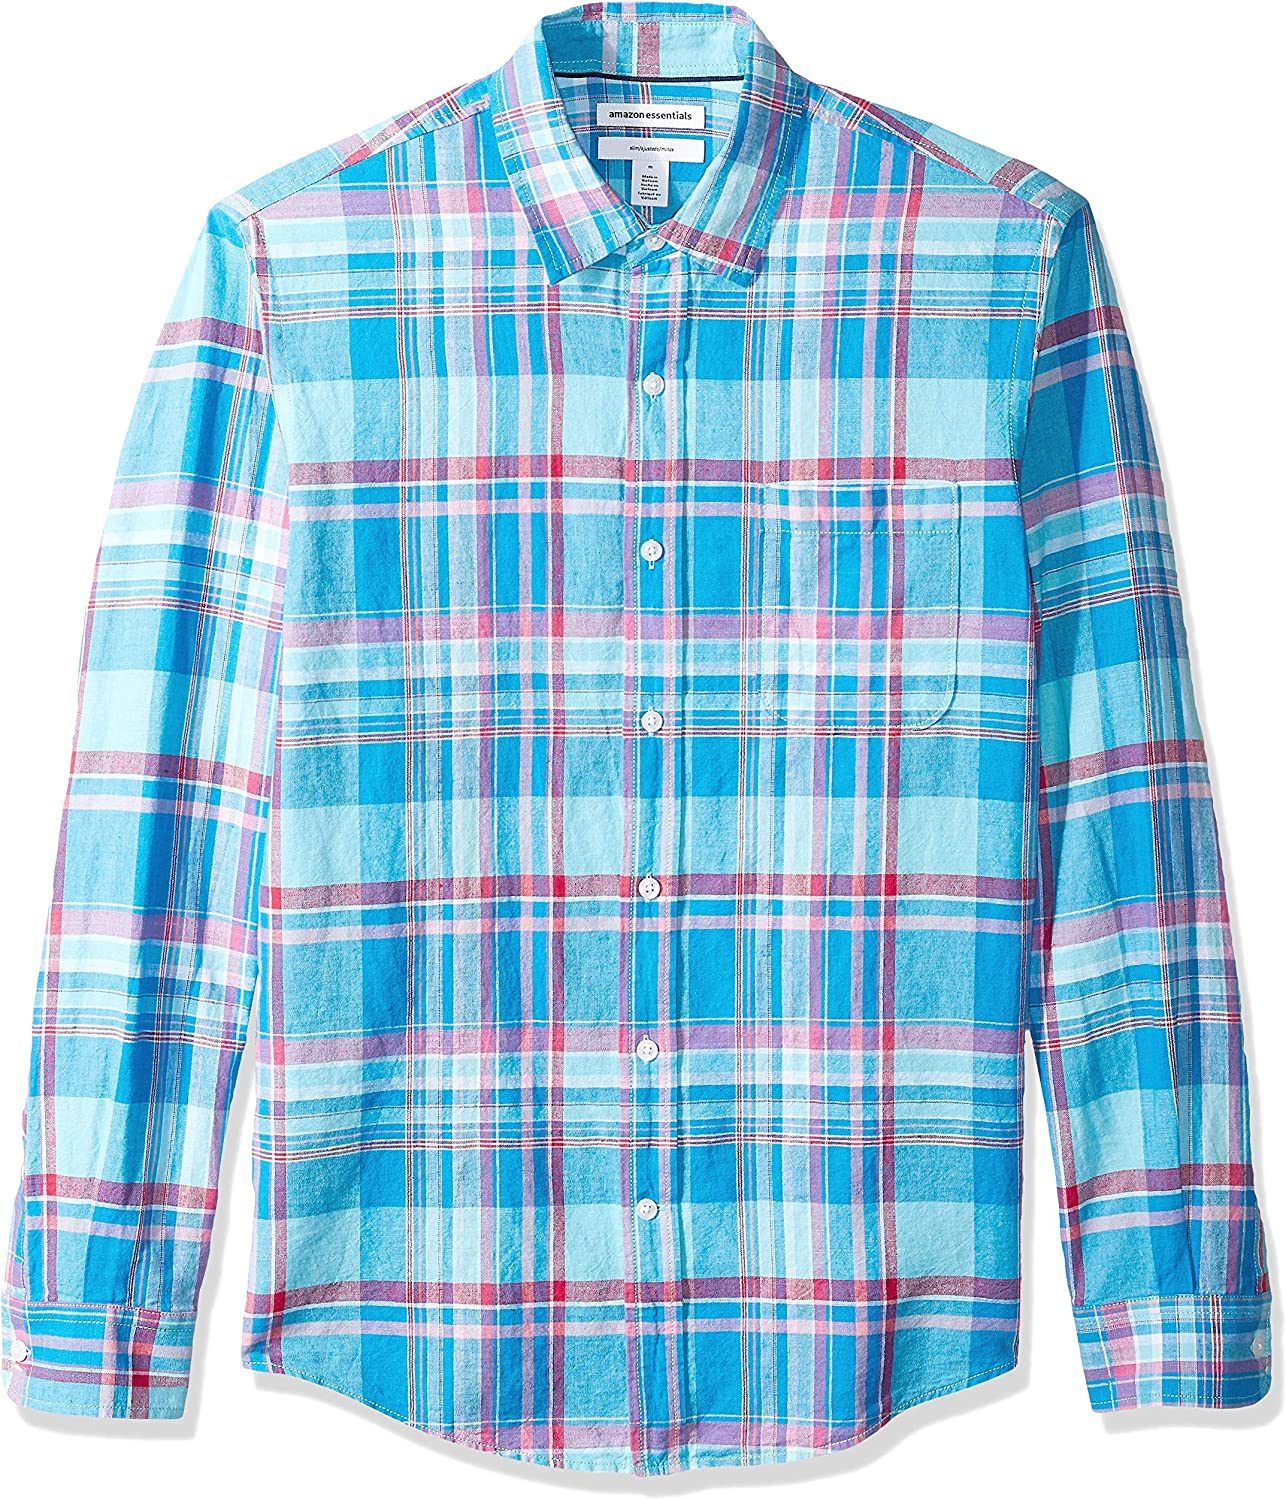 Amazon Essentials Camisa de Manga Larga con Estampado de Algodón Y Lino Button-Down-Shirts Hombre